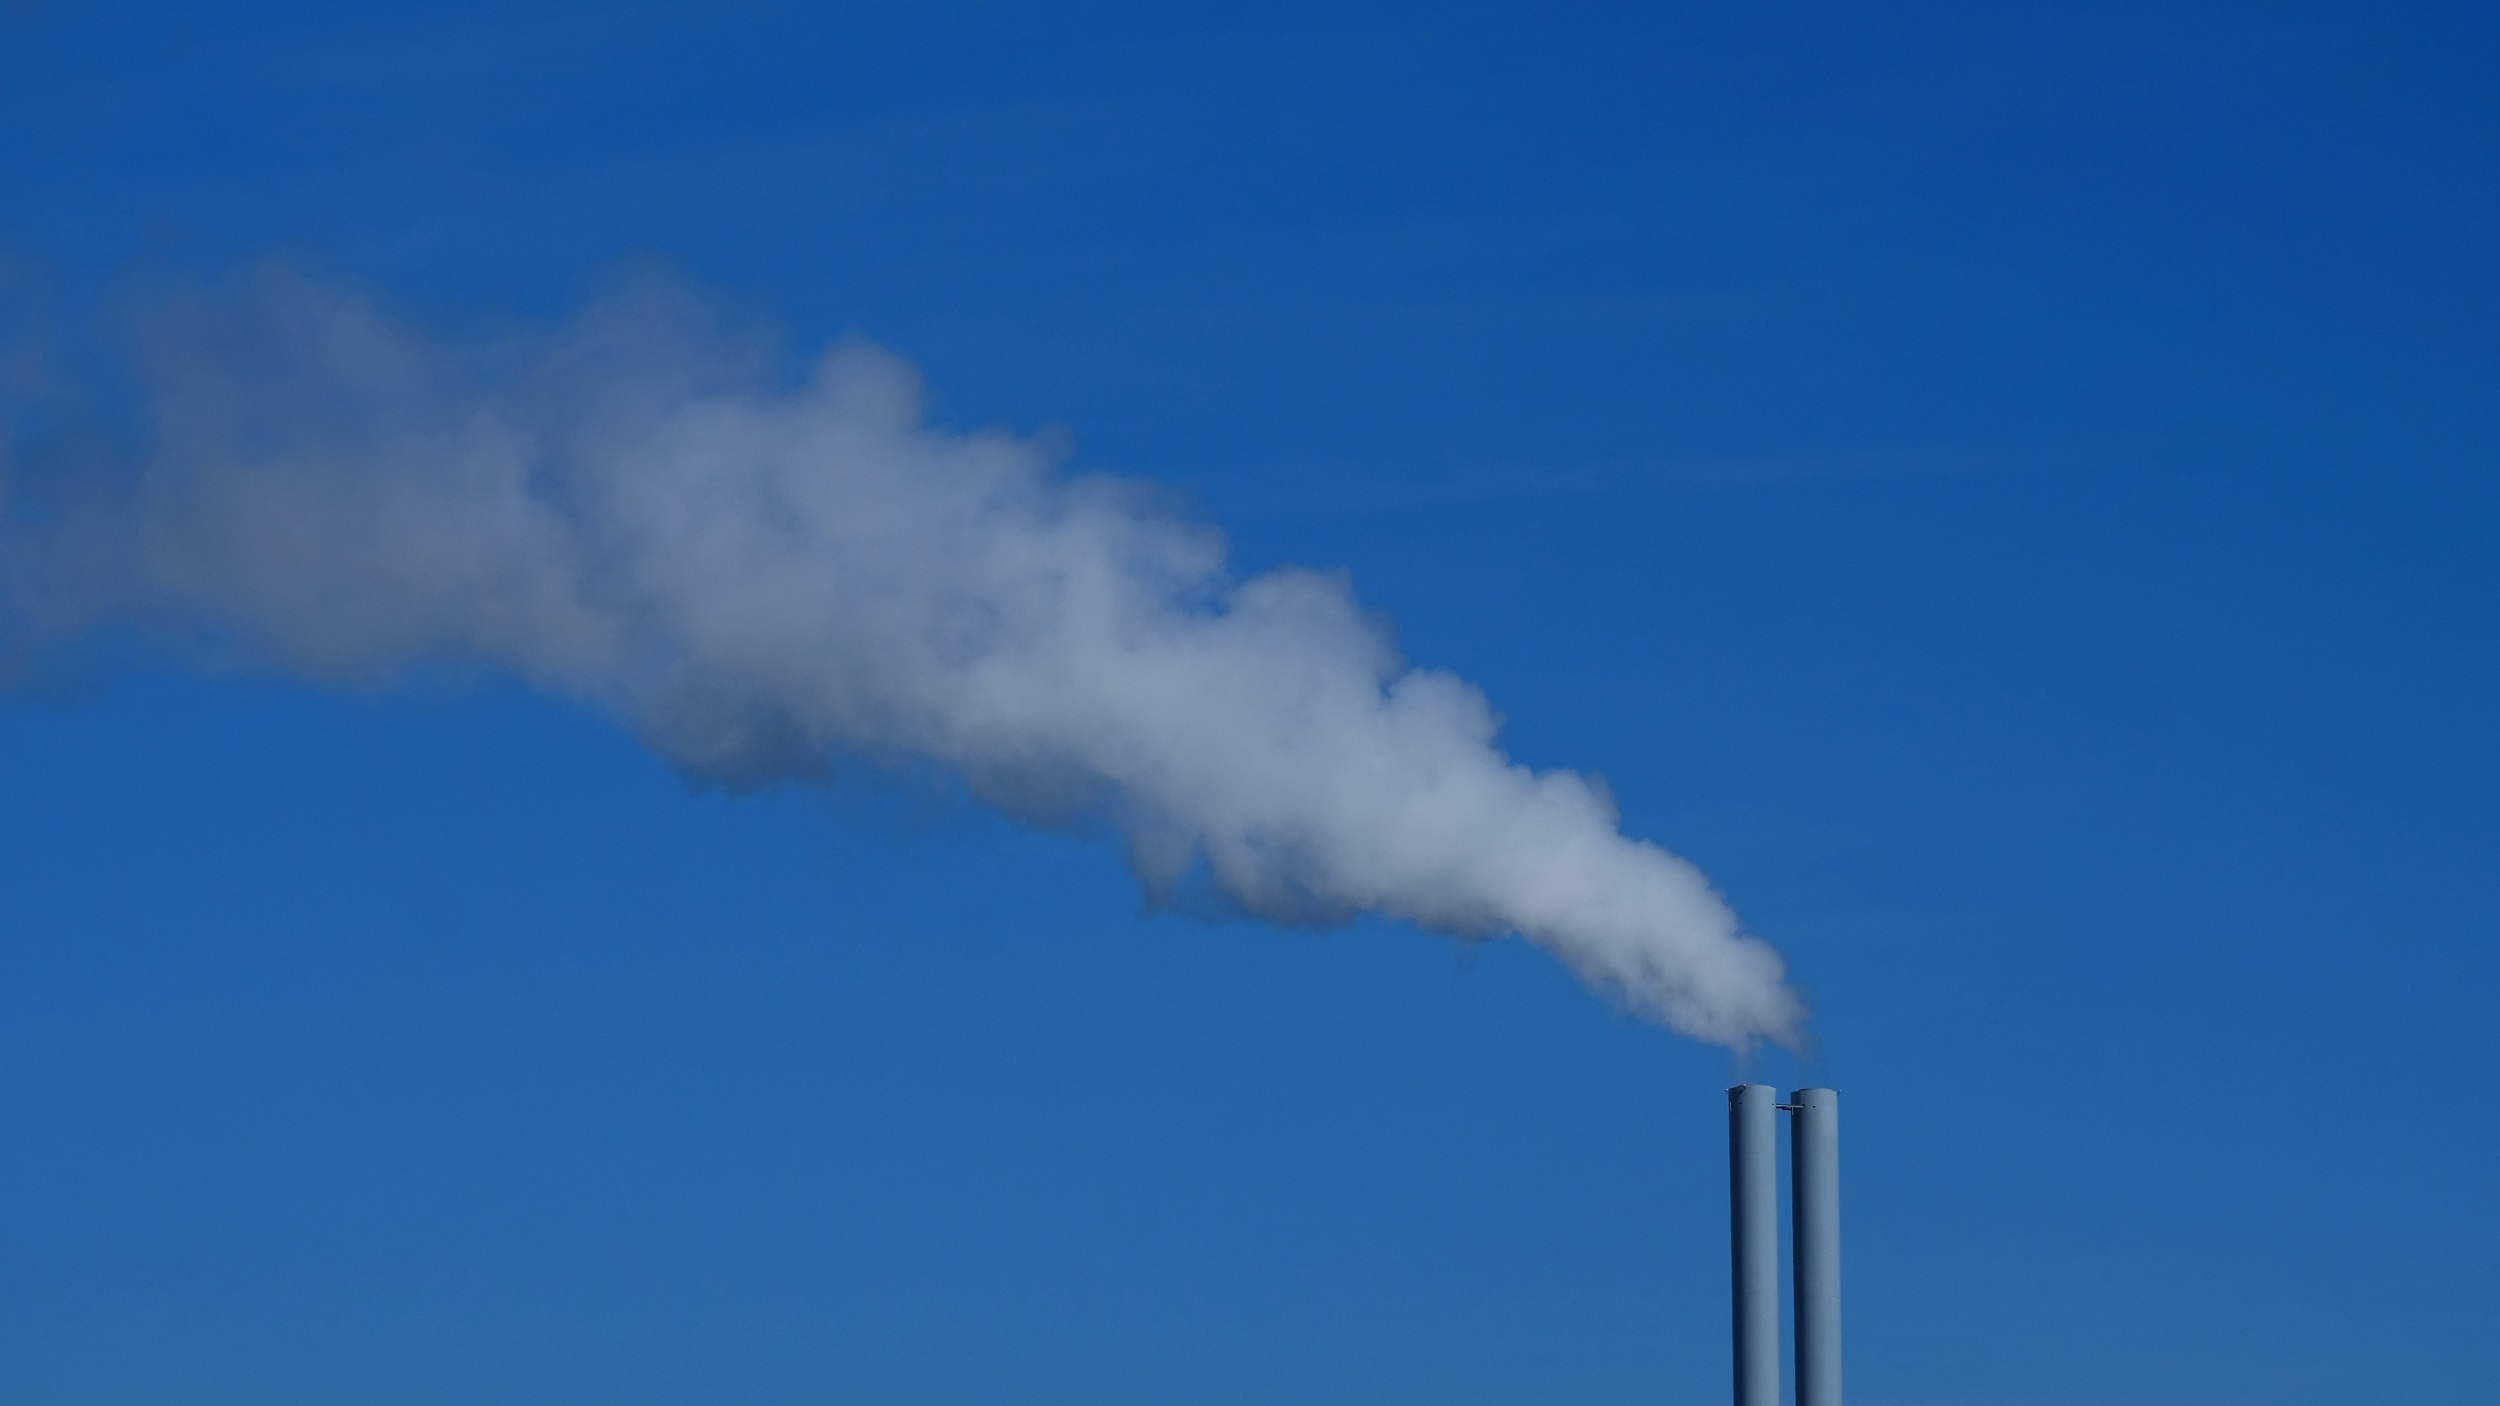 smoke stack in front of a blue sky with smoke blowing out